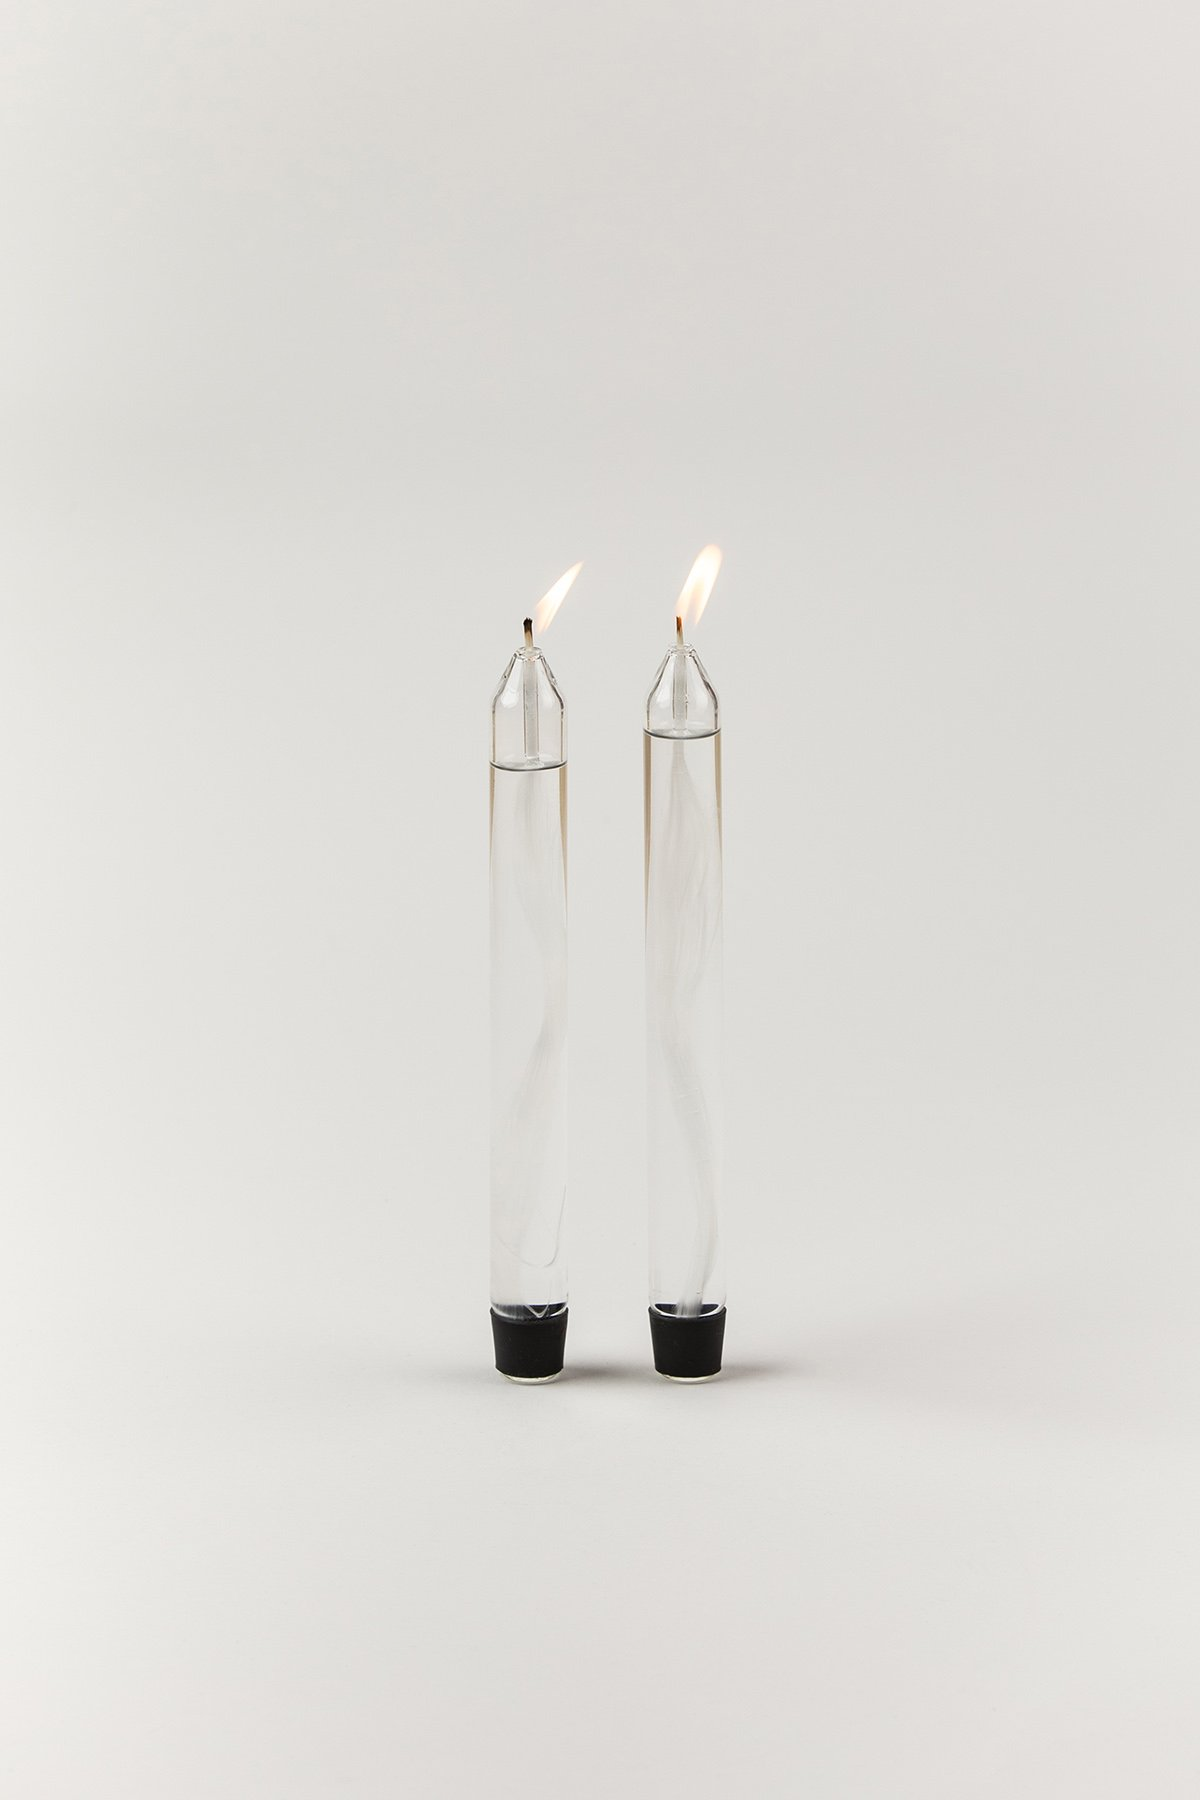 Studio About Glass Candle Oil Transparent 2-pack